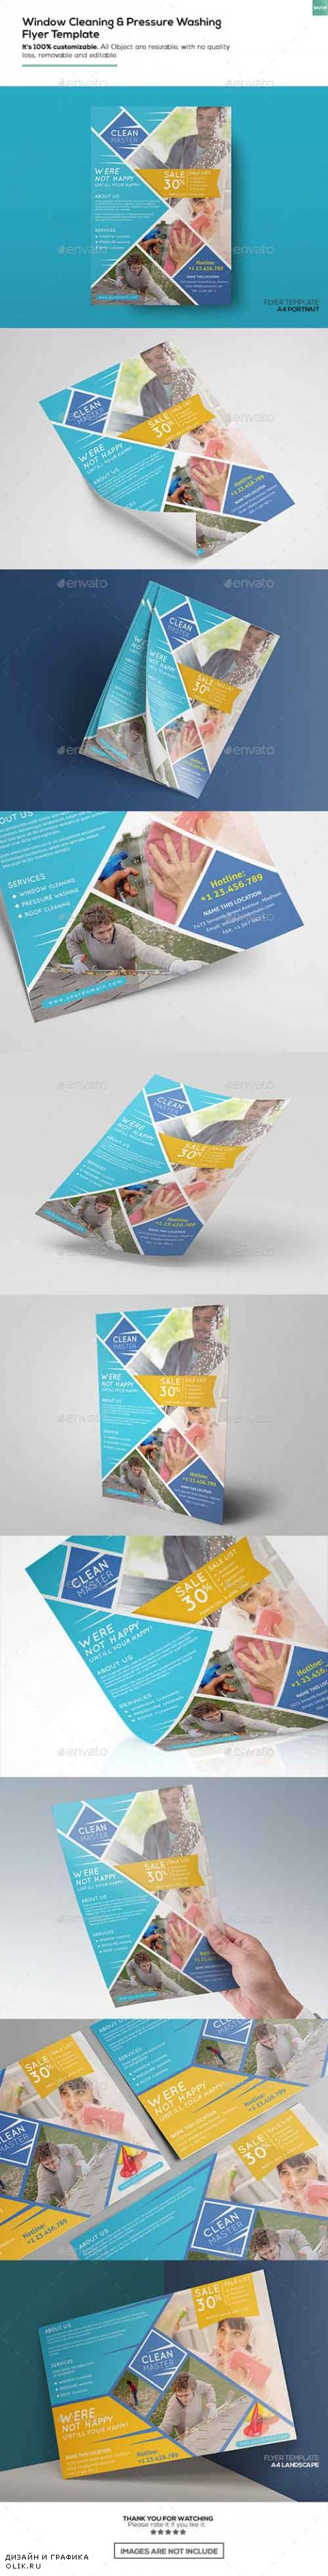 Window Cleaning & Pressure Washing/ Flyer Template 16345761